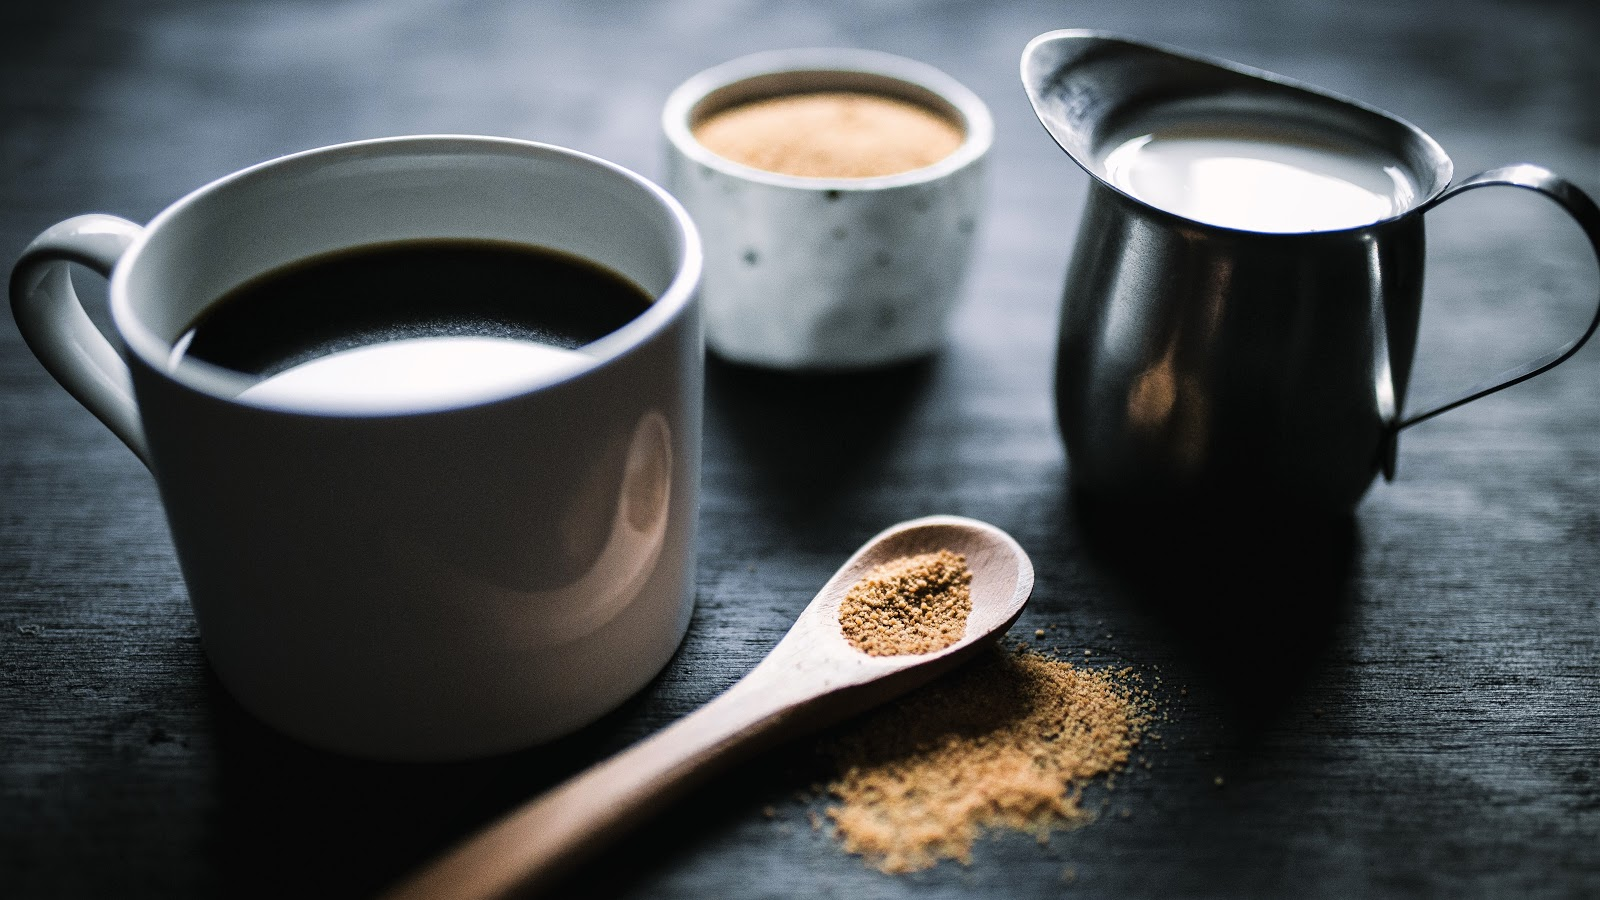 a cup of black coffee, teaspoon of sugar and jar of milk on a table